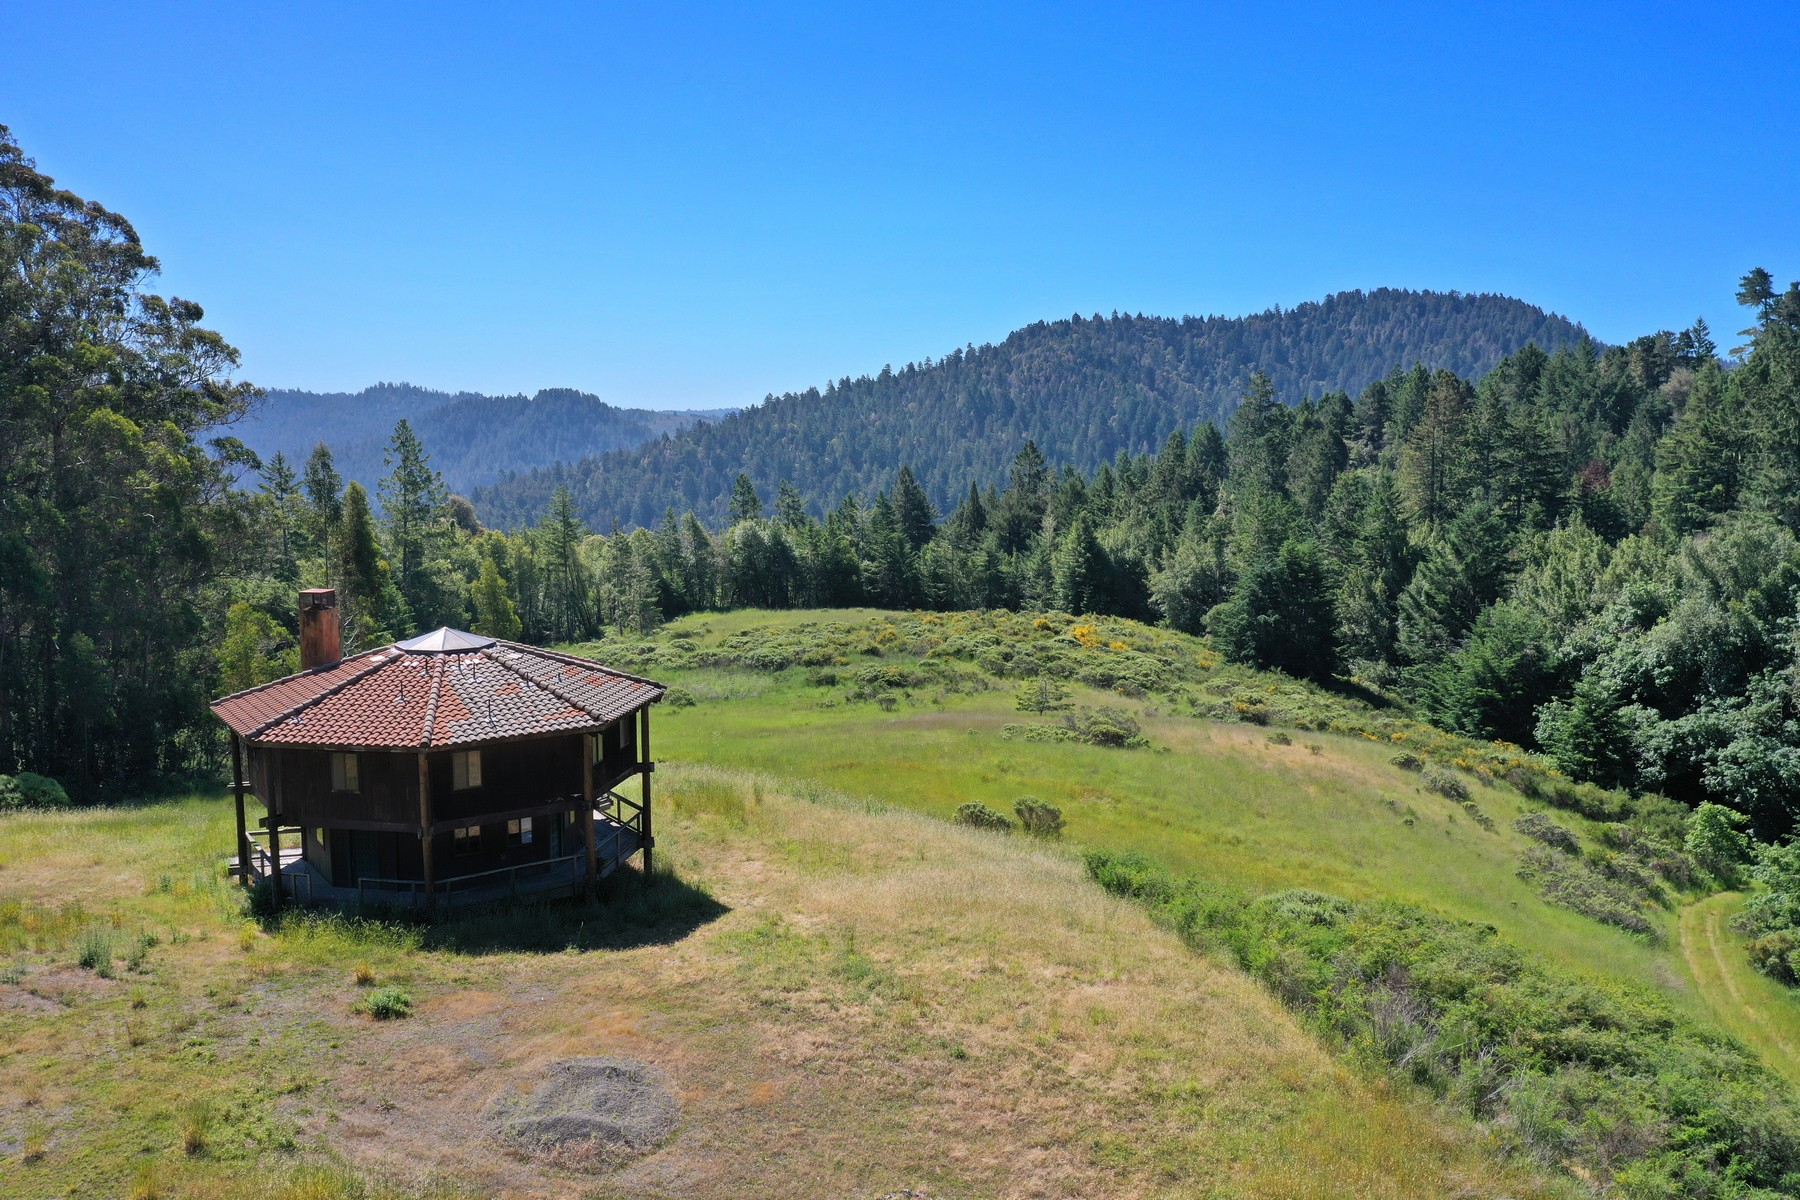 Single Family Homes for Sale at Breathtaking Mountaintop Views 22453 Highway 116 Monte Rio, California 95462 United States